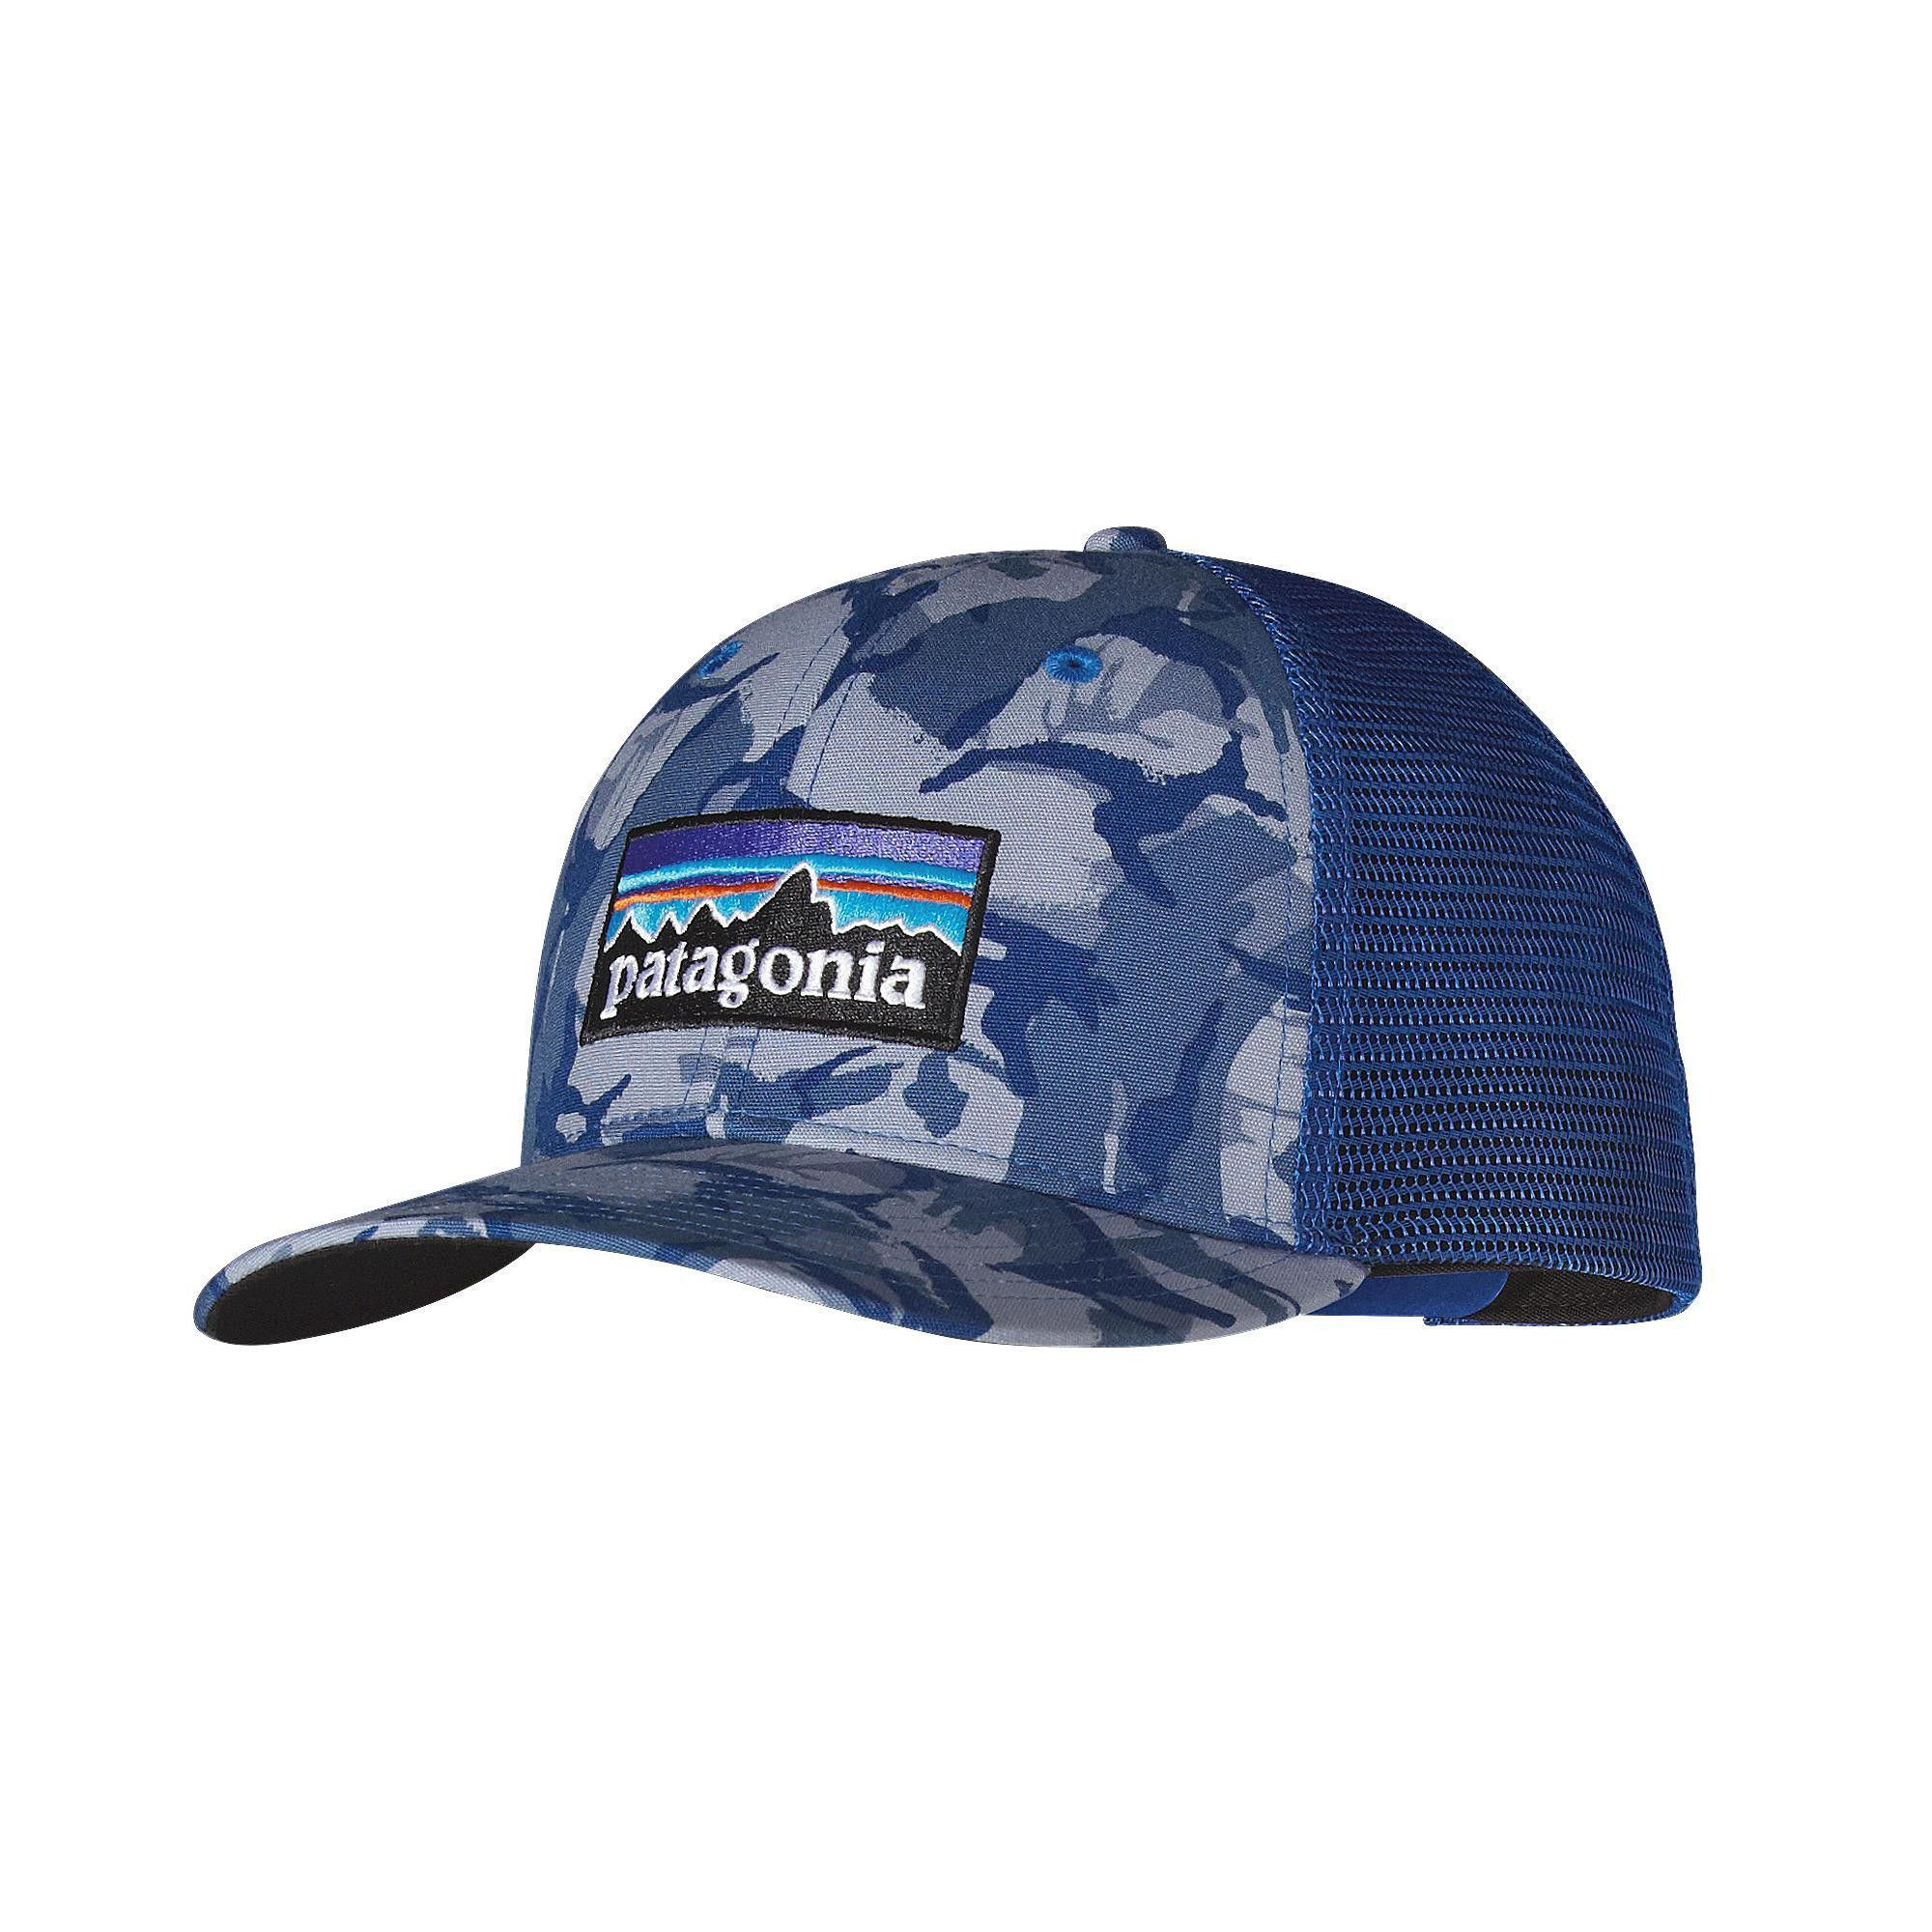 Patagonia P-6 Trucker Hat- Big Camo- Leaden Blue from Shop Southern Roots TX 97745eaf83c